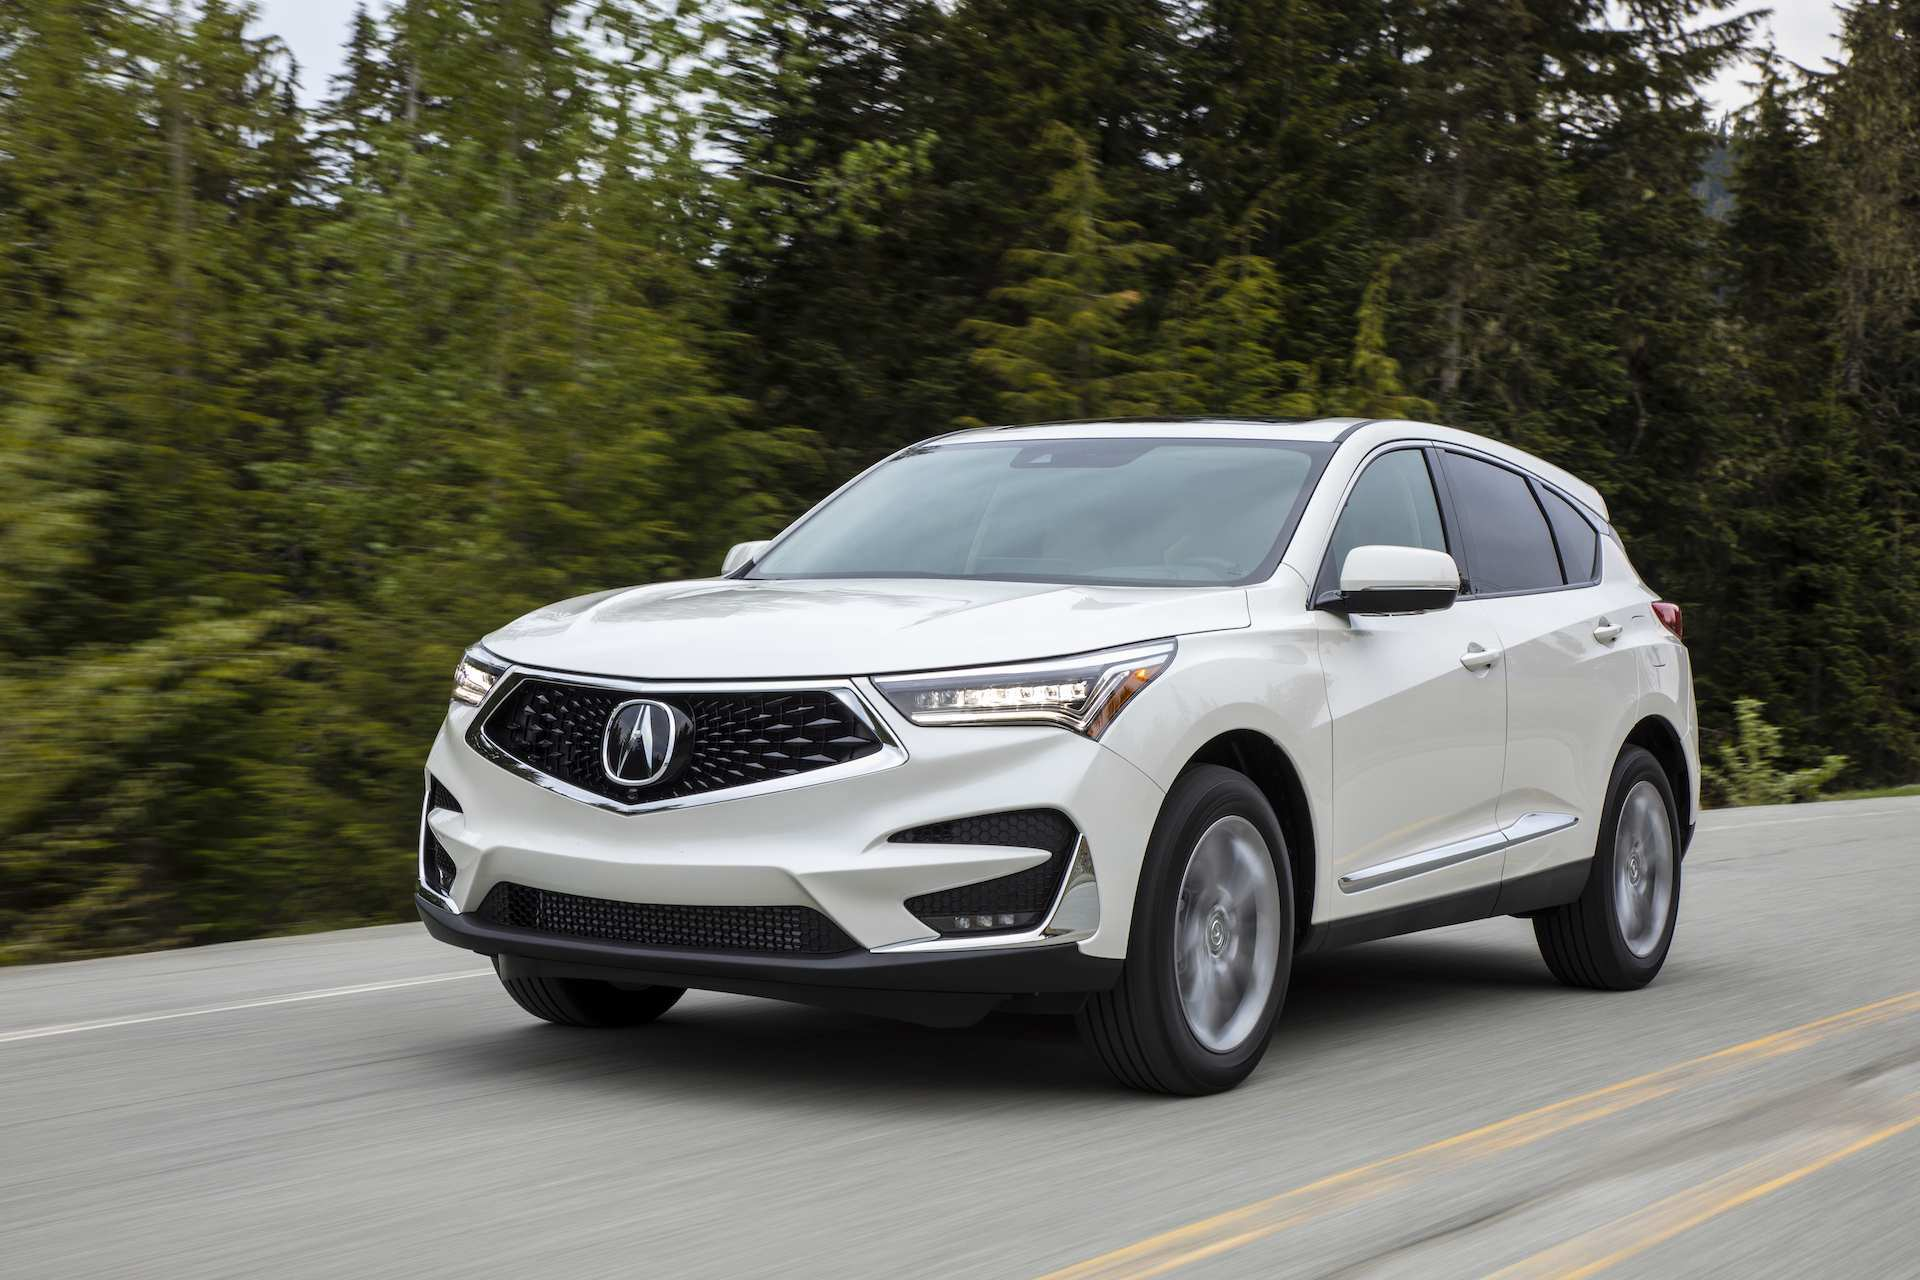 71 The Best 2019 Acura Rdx Preview Model